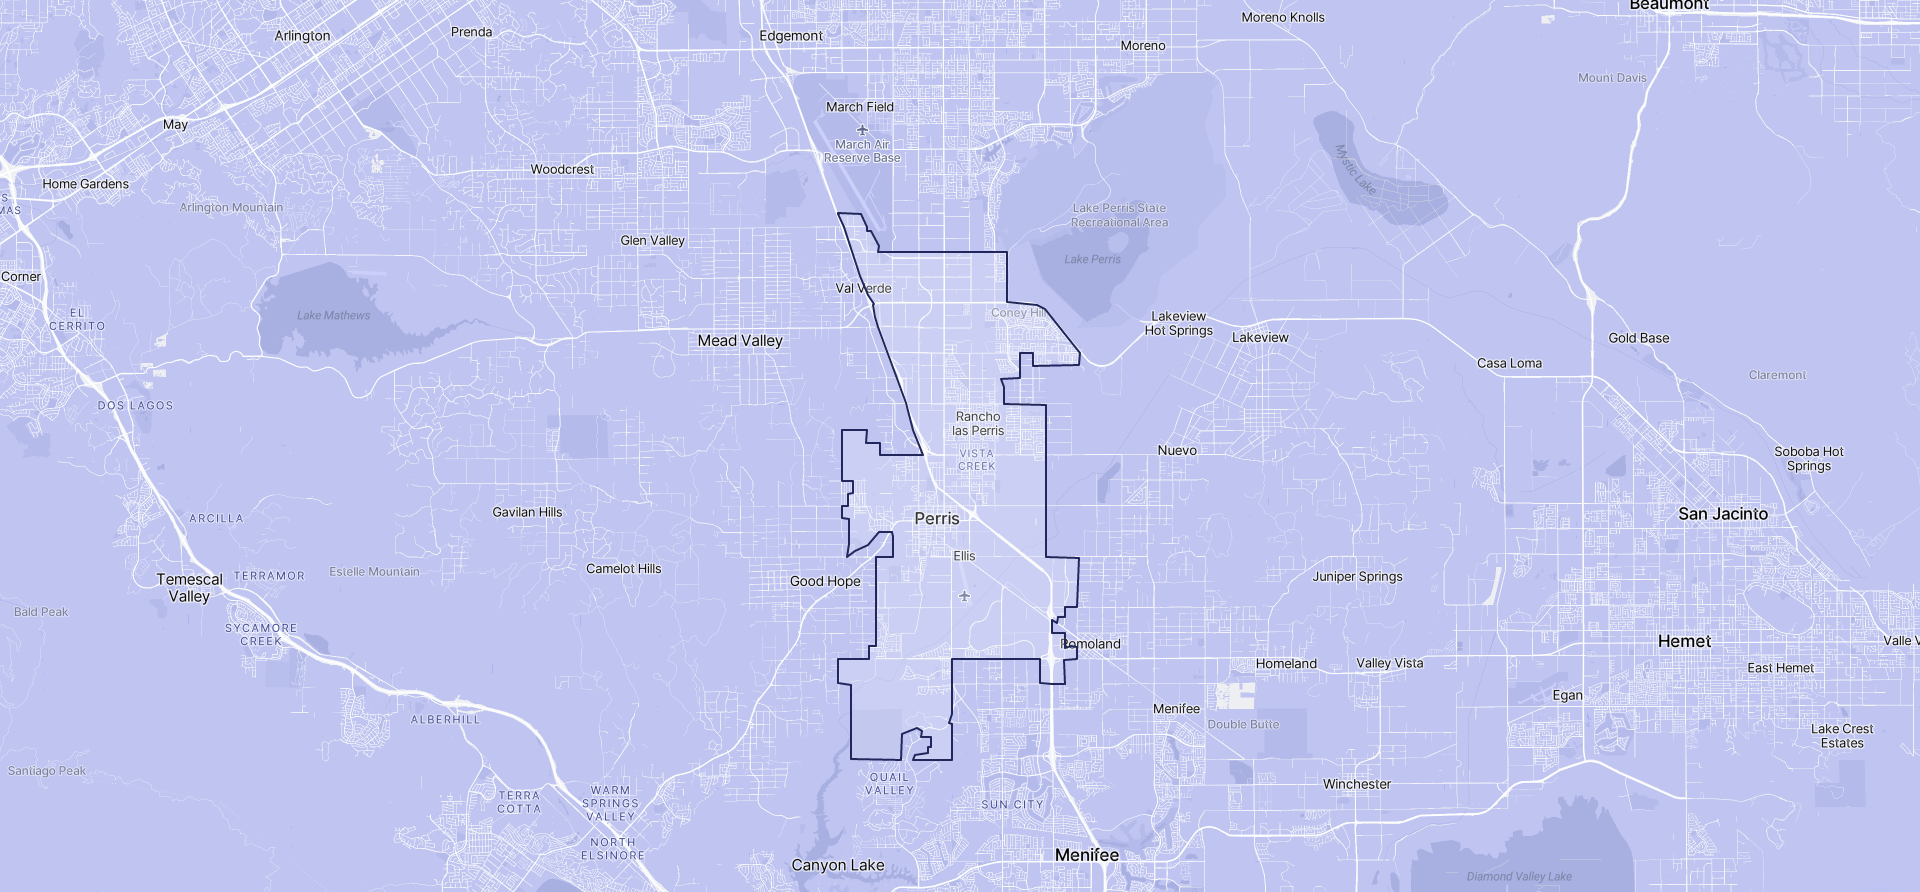 Image of Perris boundaries on a map.